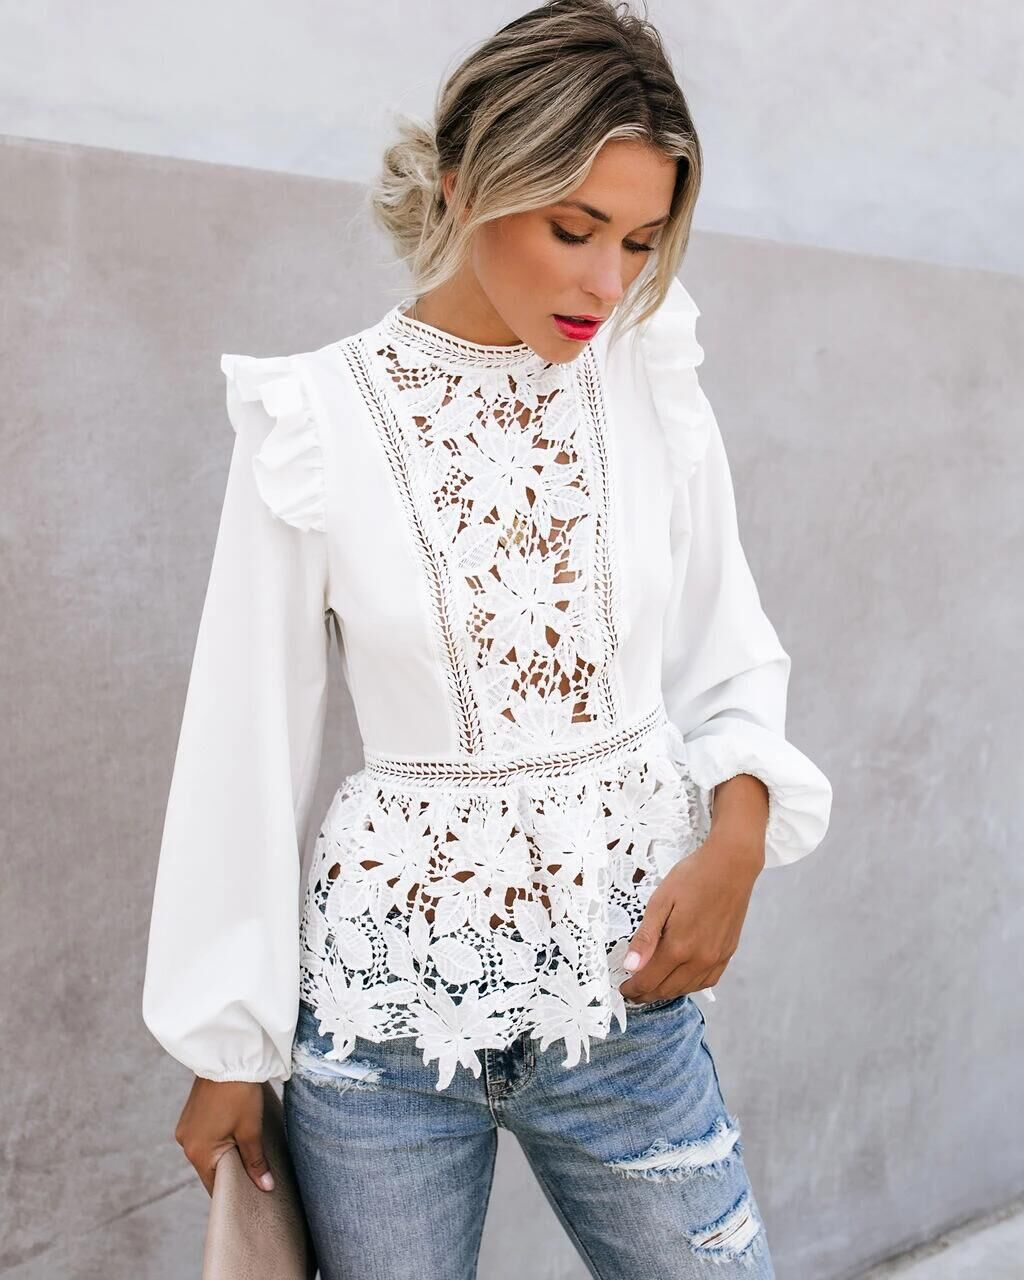 Women Floral Lace Blouses Boho Long Sleeve White Tops Ladies Hollow Out Shirts Autumn Spring Elegant Blouse Streetwear S-XL 5